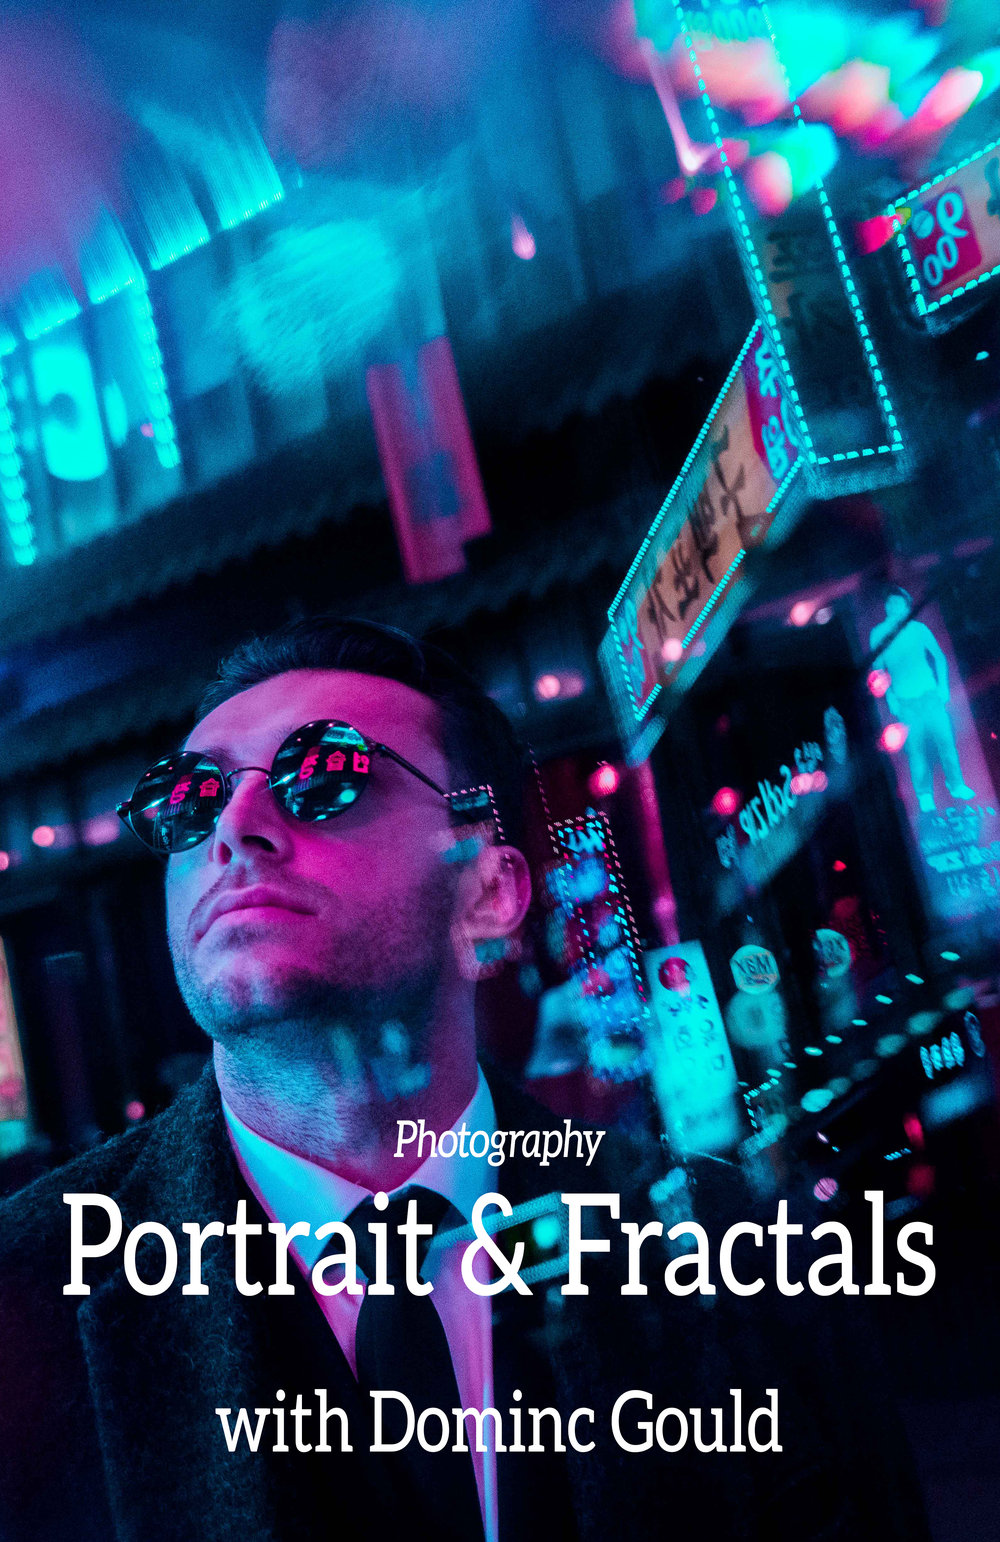 Portrait & Fractals - With model Dominic Gould